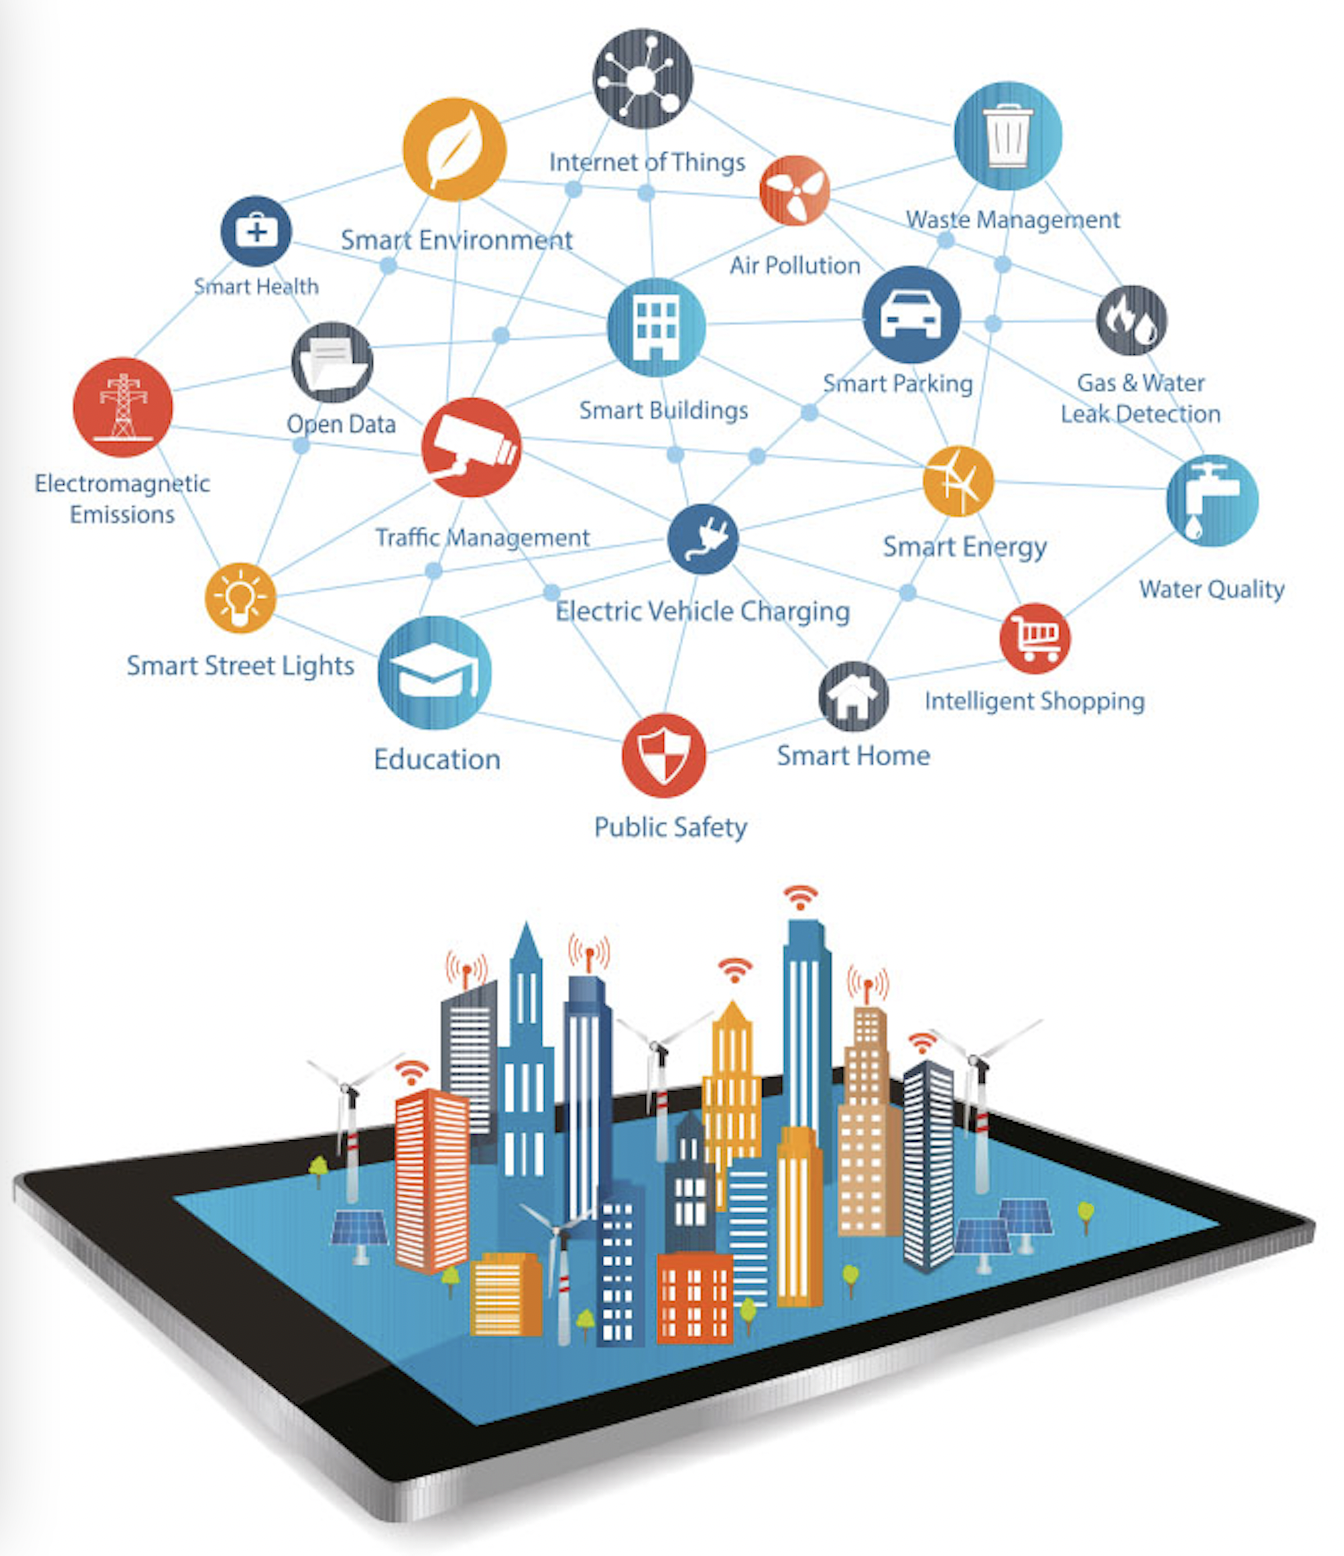 Use cases for smart citiesOverview